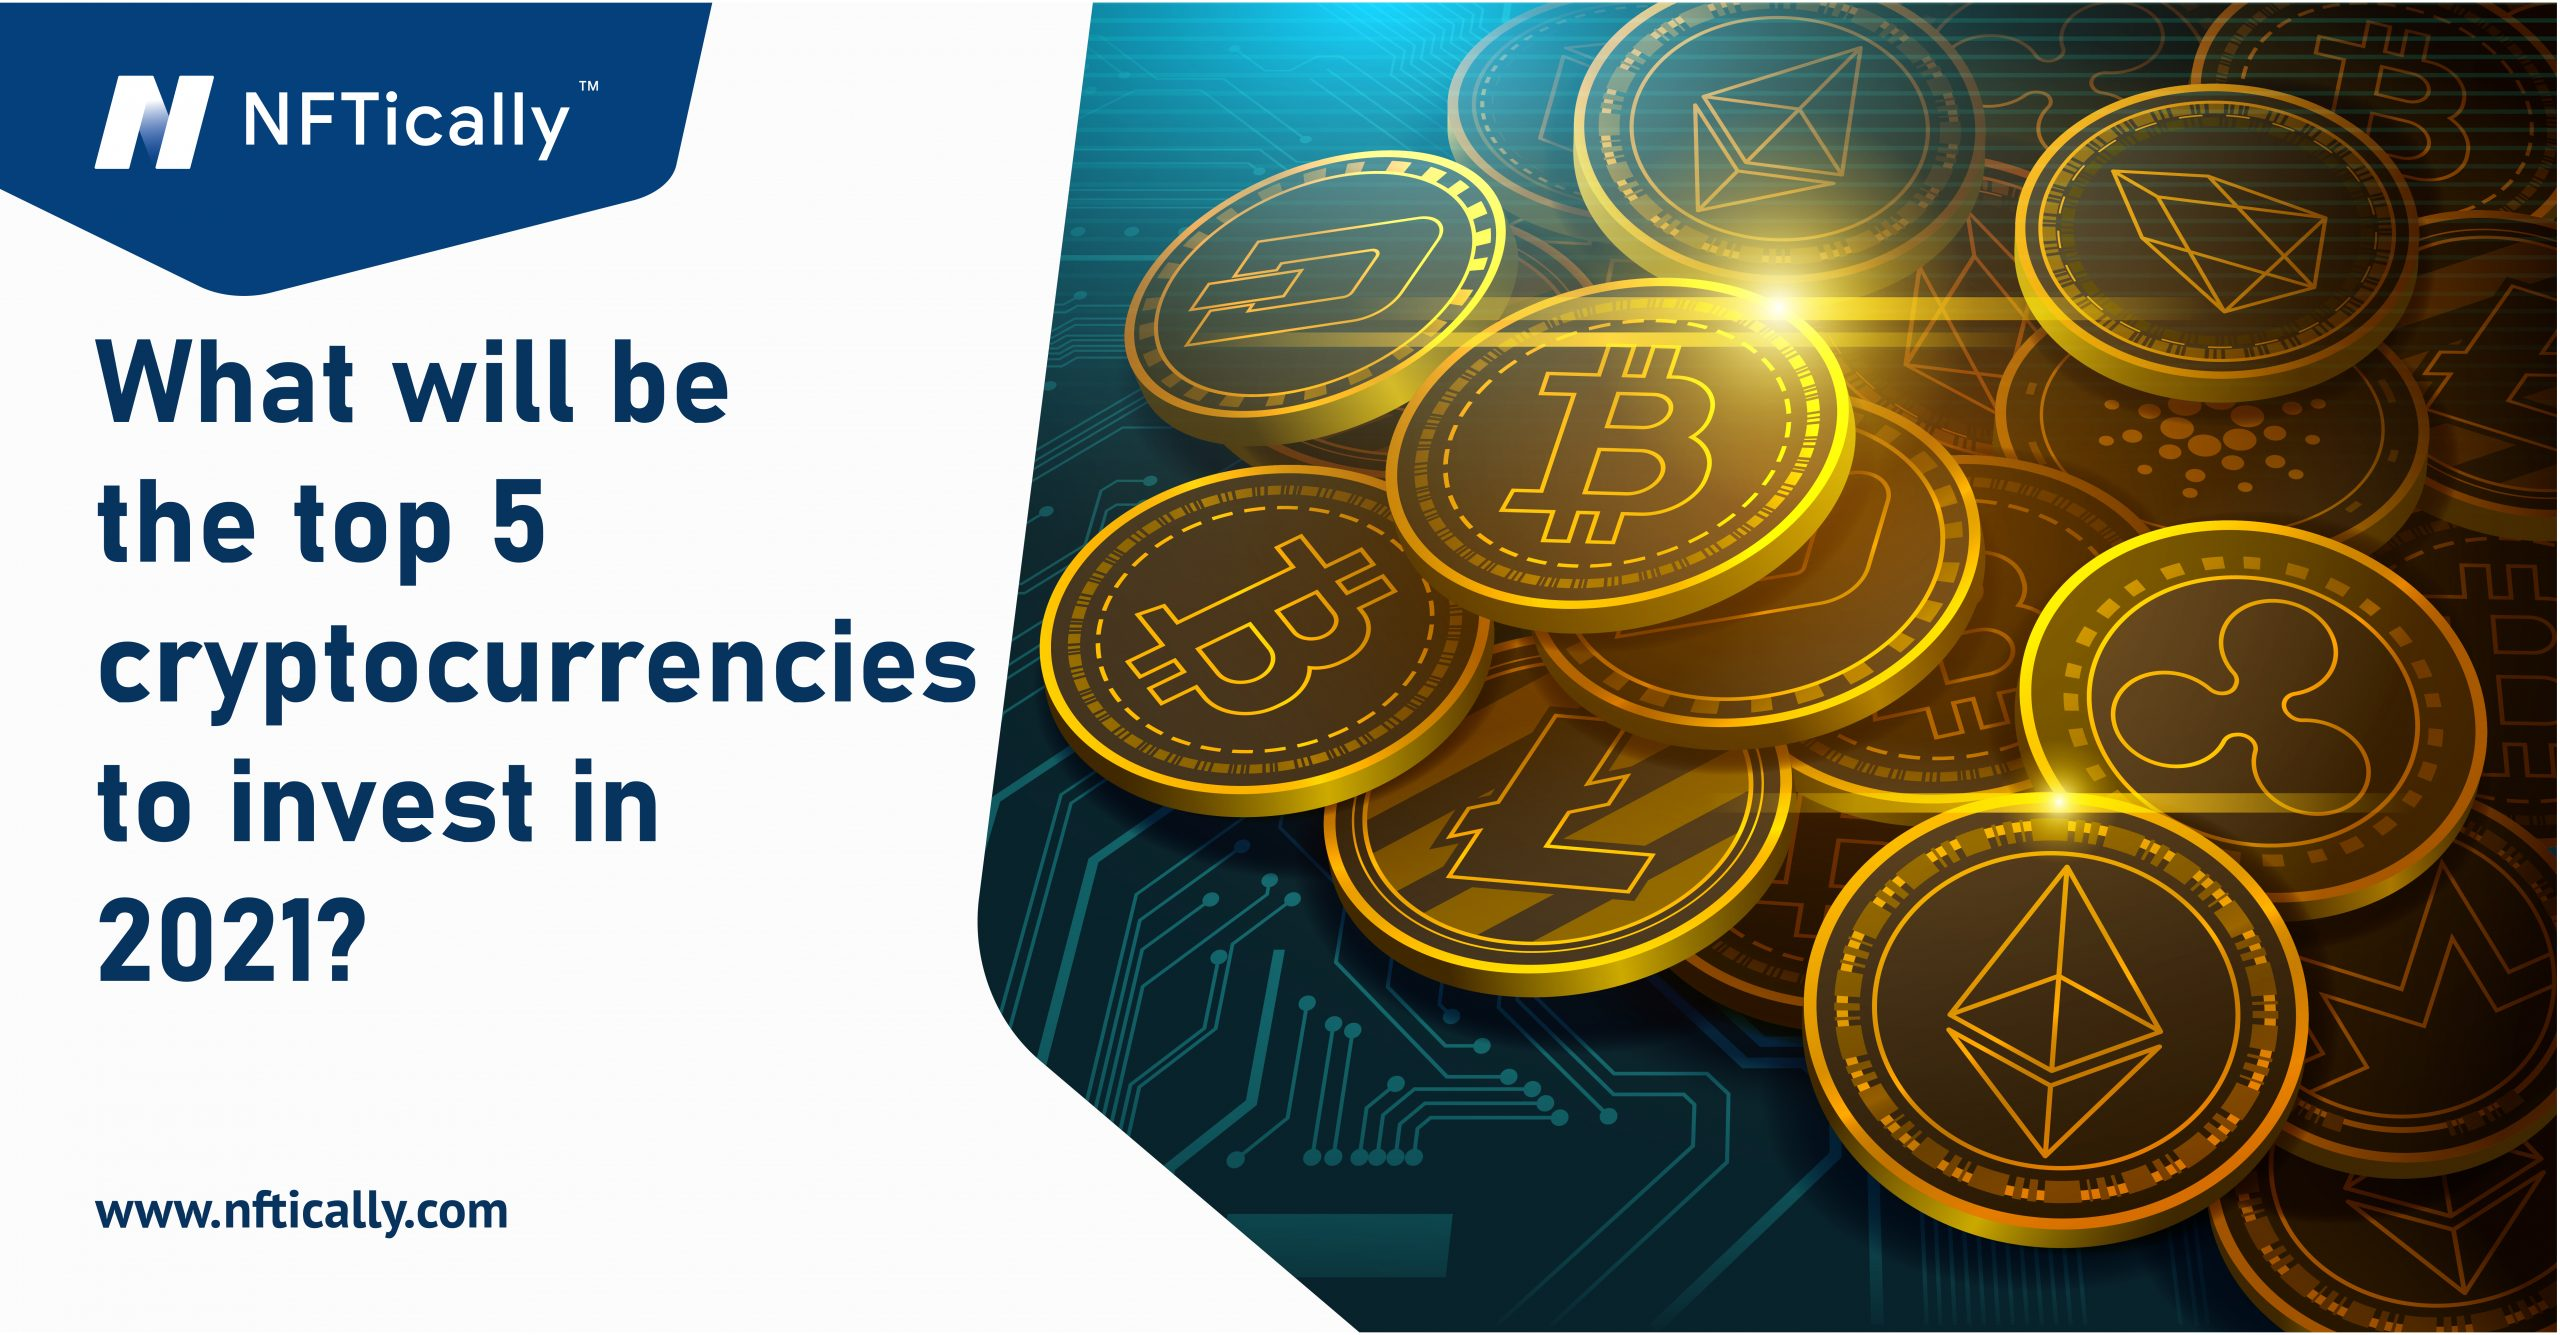 What Will Be The Top 5 Cryptocurrencies to Invest in 2021?